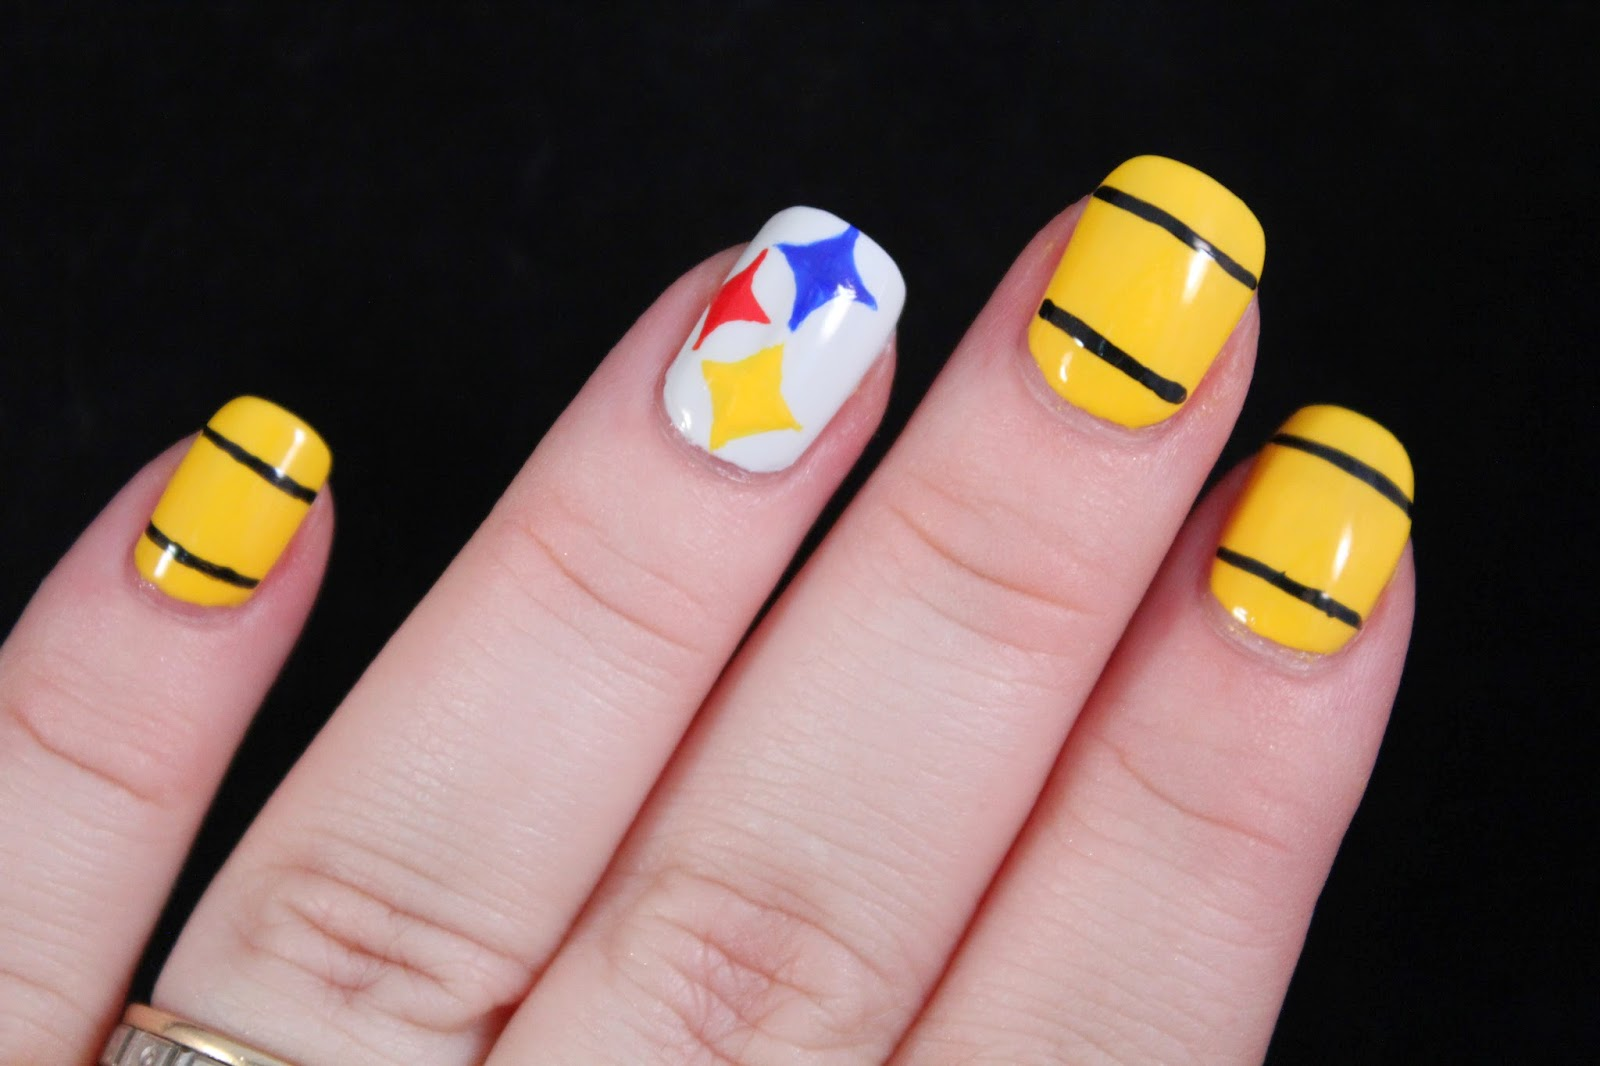 Glimpses of the Moon: Steelers Nail Art Tutorial